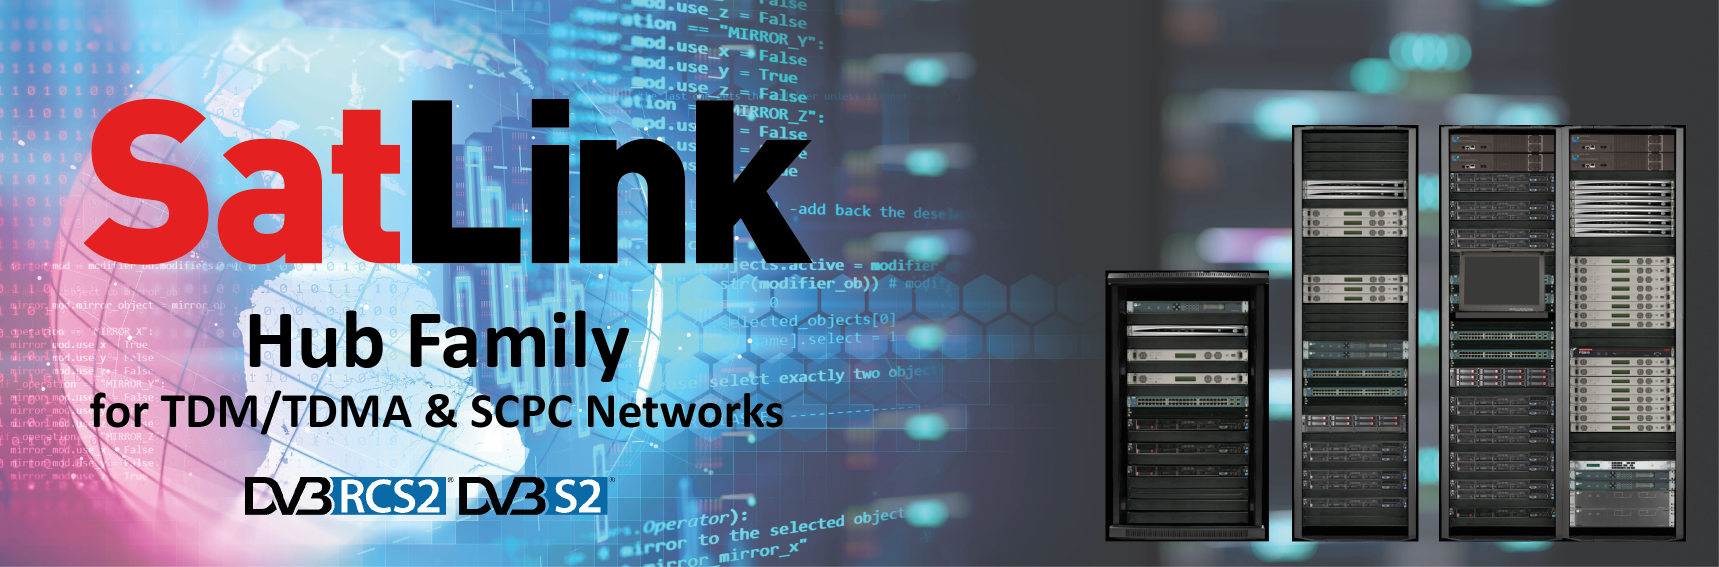 SatLink Hub Family for TDM/TDMA & SCPC Satellite Networks